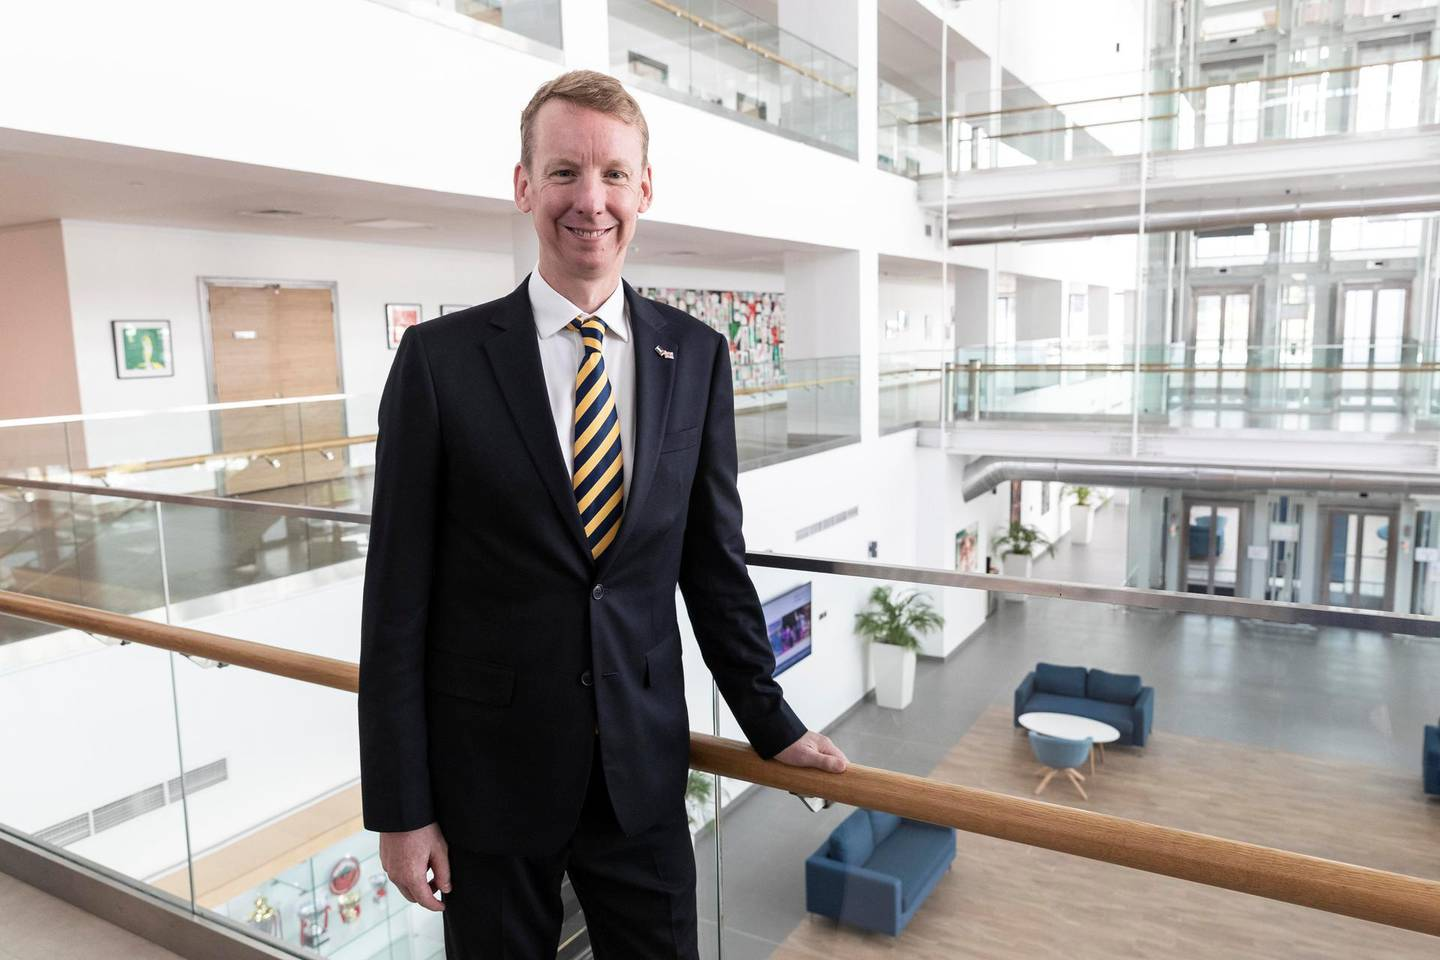 DUBAI, UNITED ARAB EMIRATES. 14 OCTOBER 2019. North London Collegiate School, one of Dubai's most expensive schools is expanding after the school's population has grown from 250 to 800 in two years. Principal James Monaghan. (Photo: Antonie Robertson/The National) Journalist: Anam Rizvi. Section: National.